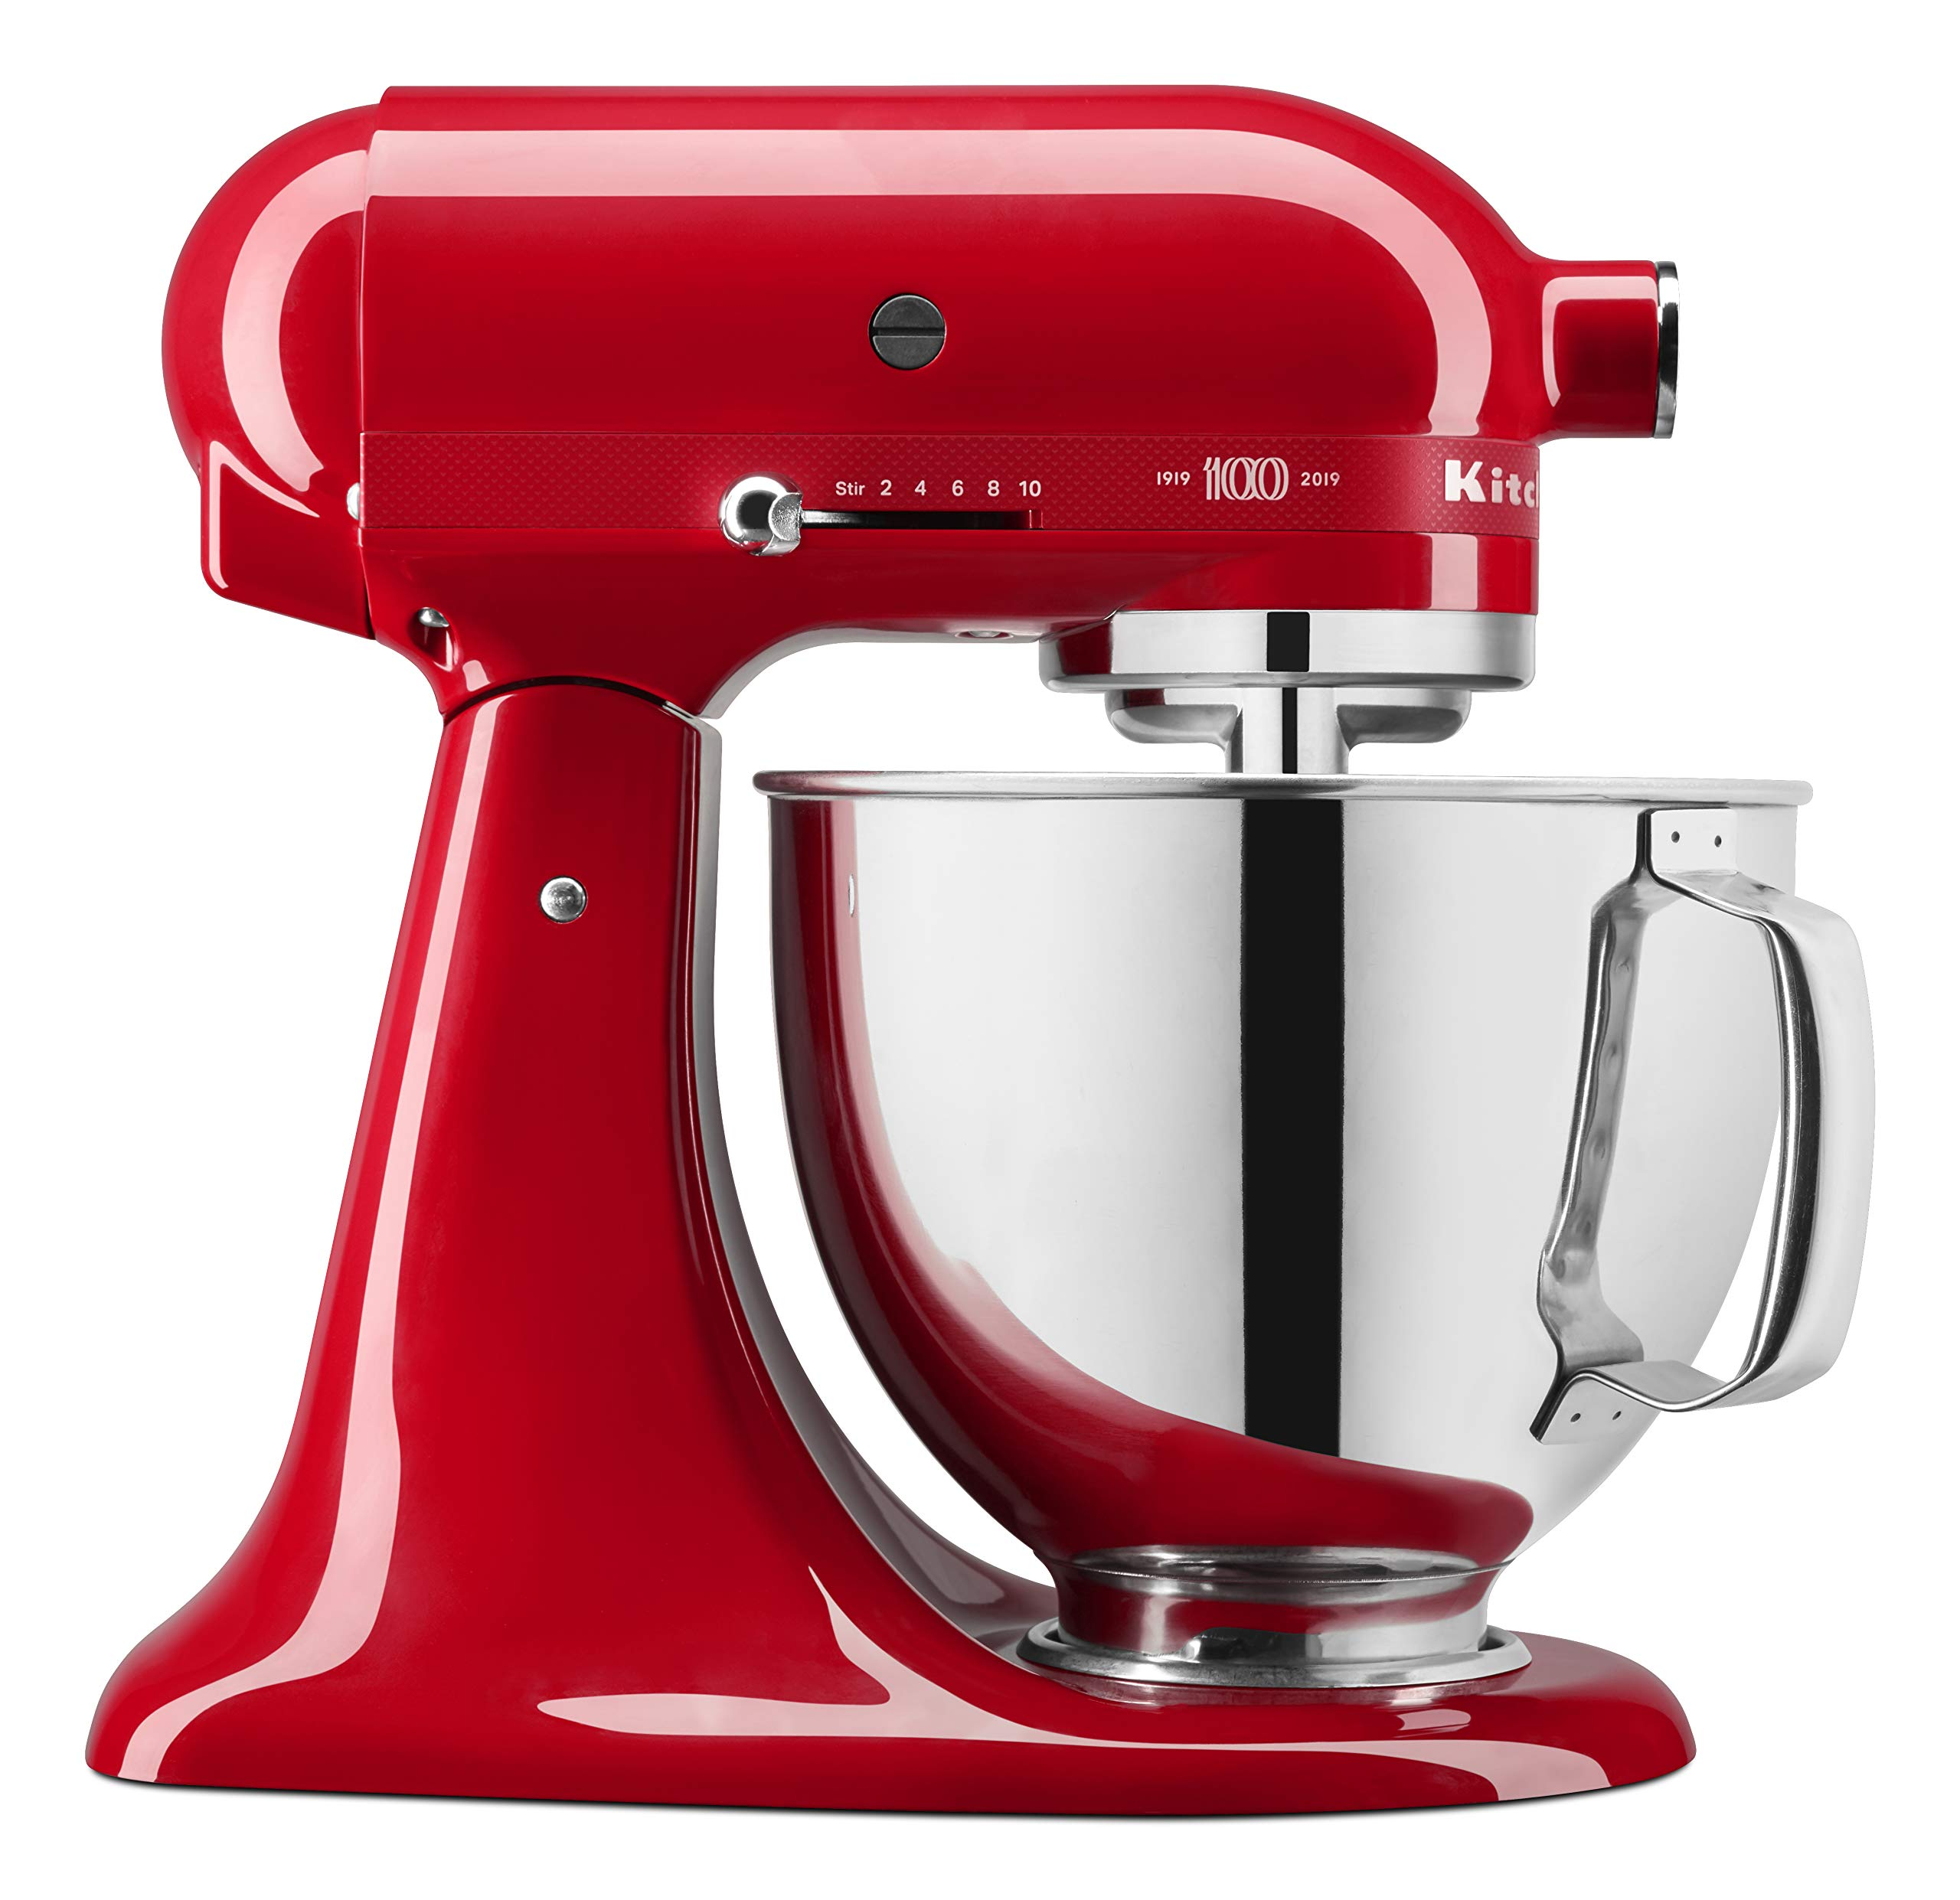 KitchenAid KSM180QHSD 100 Year Limited Edition Queen of Hearts Stand Mixer, Passion Red by KitchenAid (Image #1)